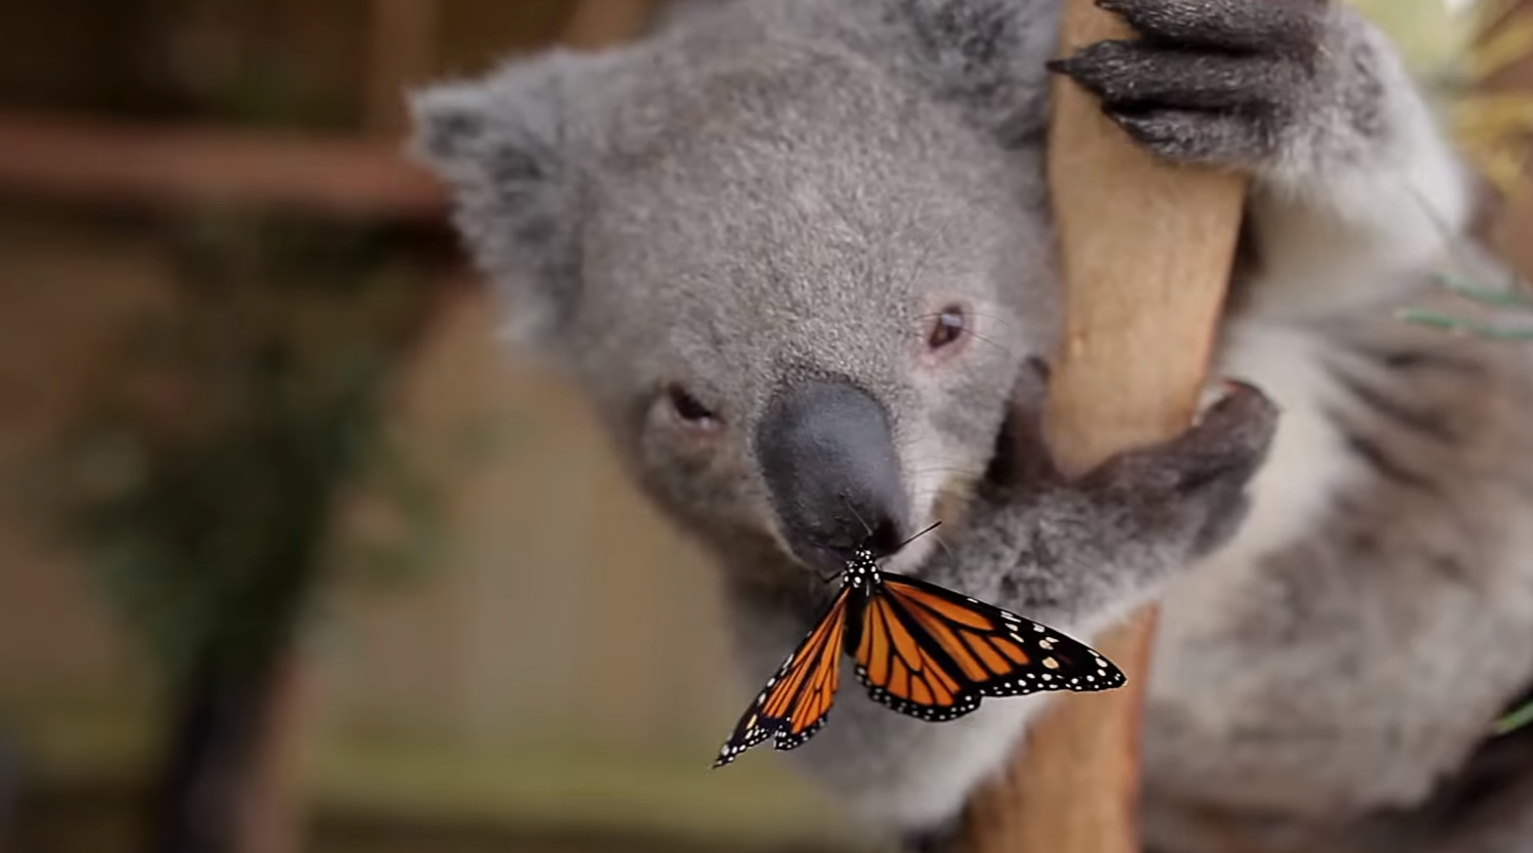 This Koala Joey Playing With A Butterfly Is The Cutest